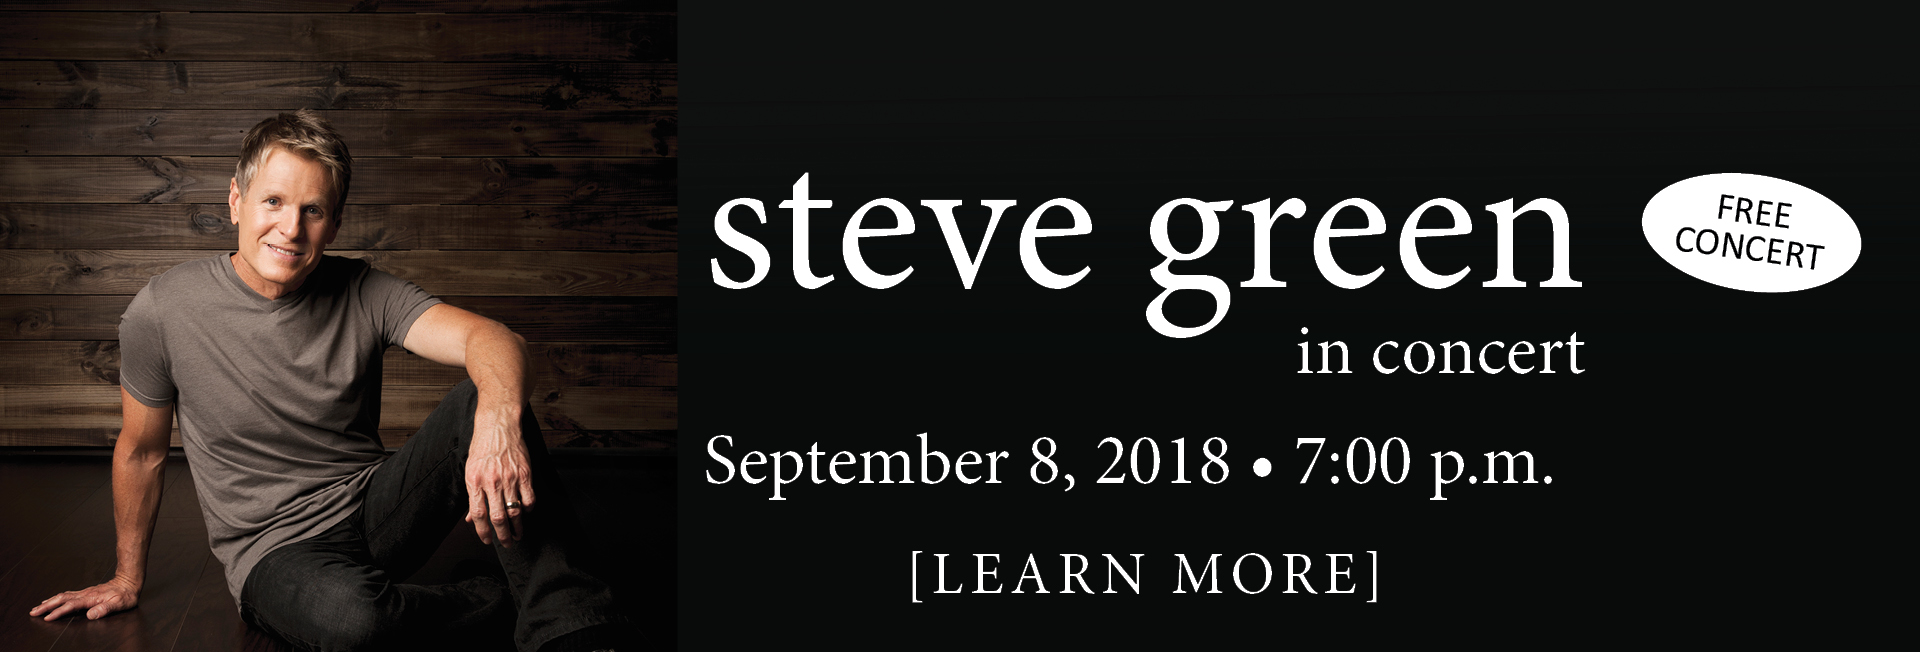 Steve Green Concert Saturday September 8 at 7pm